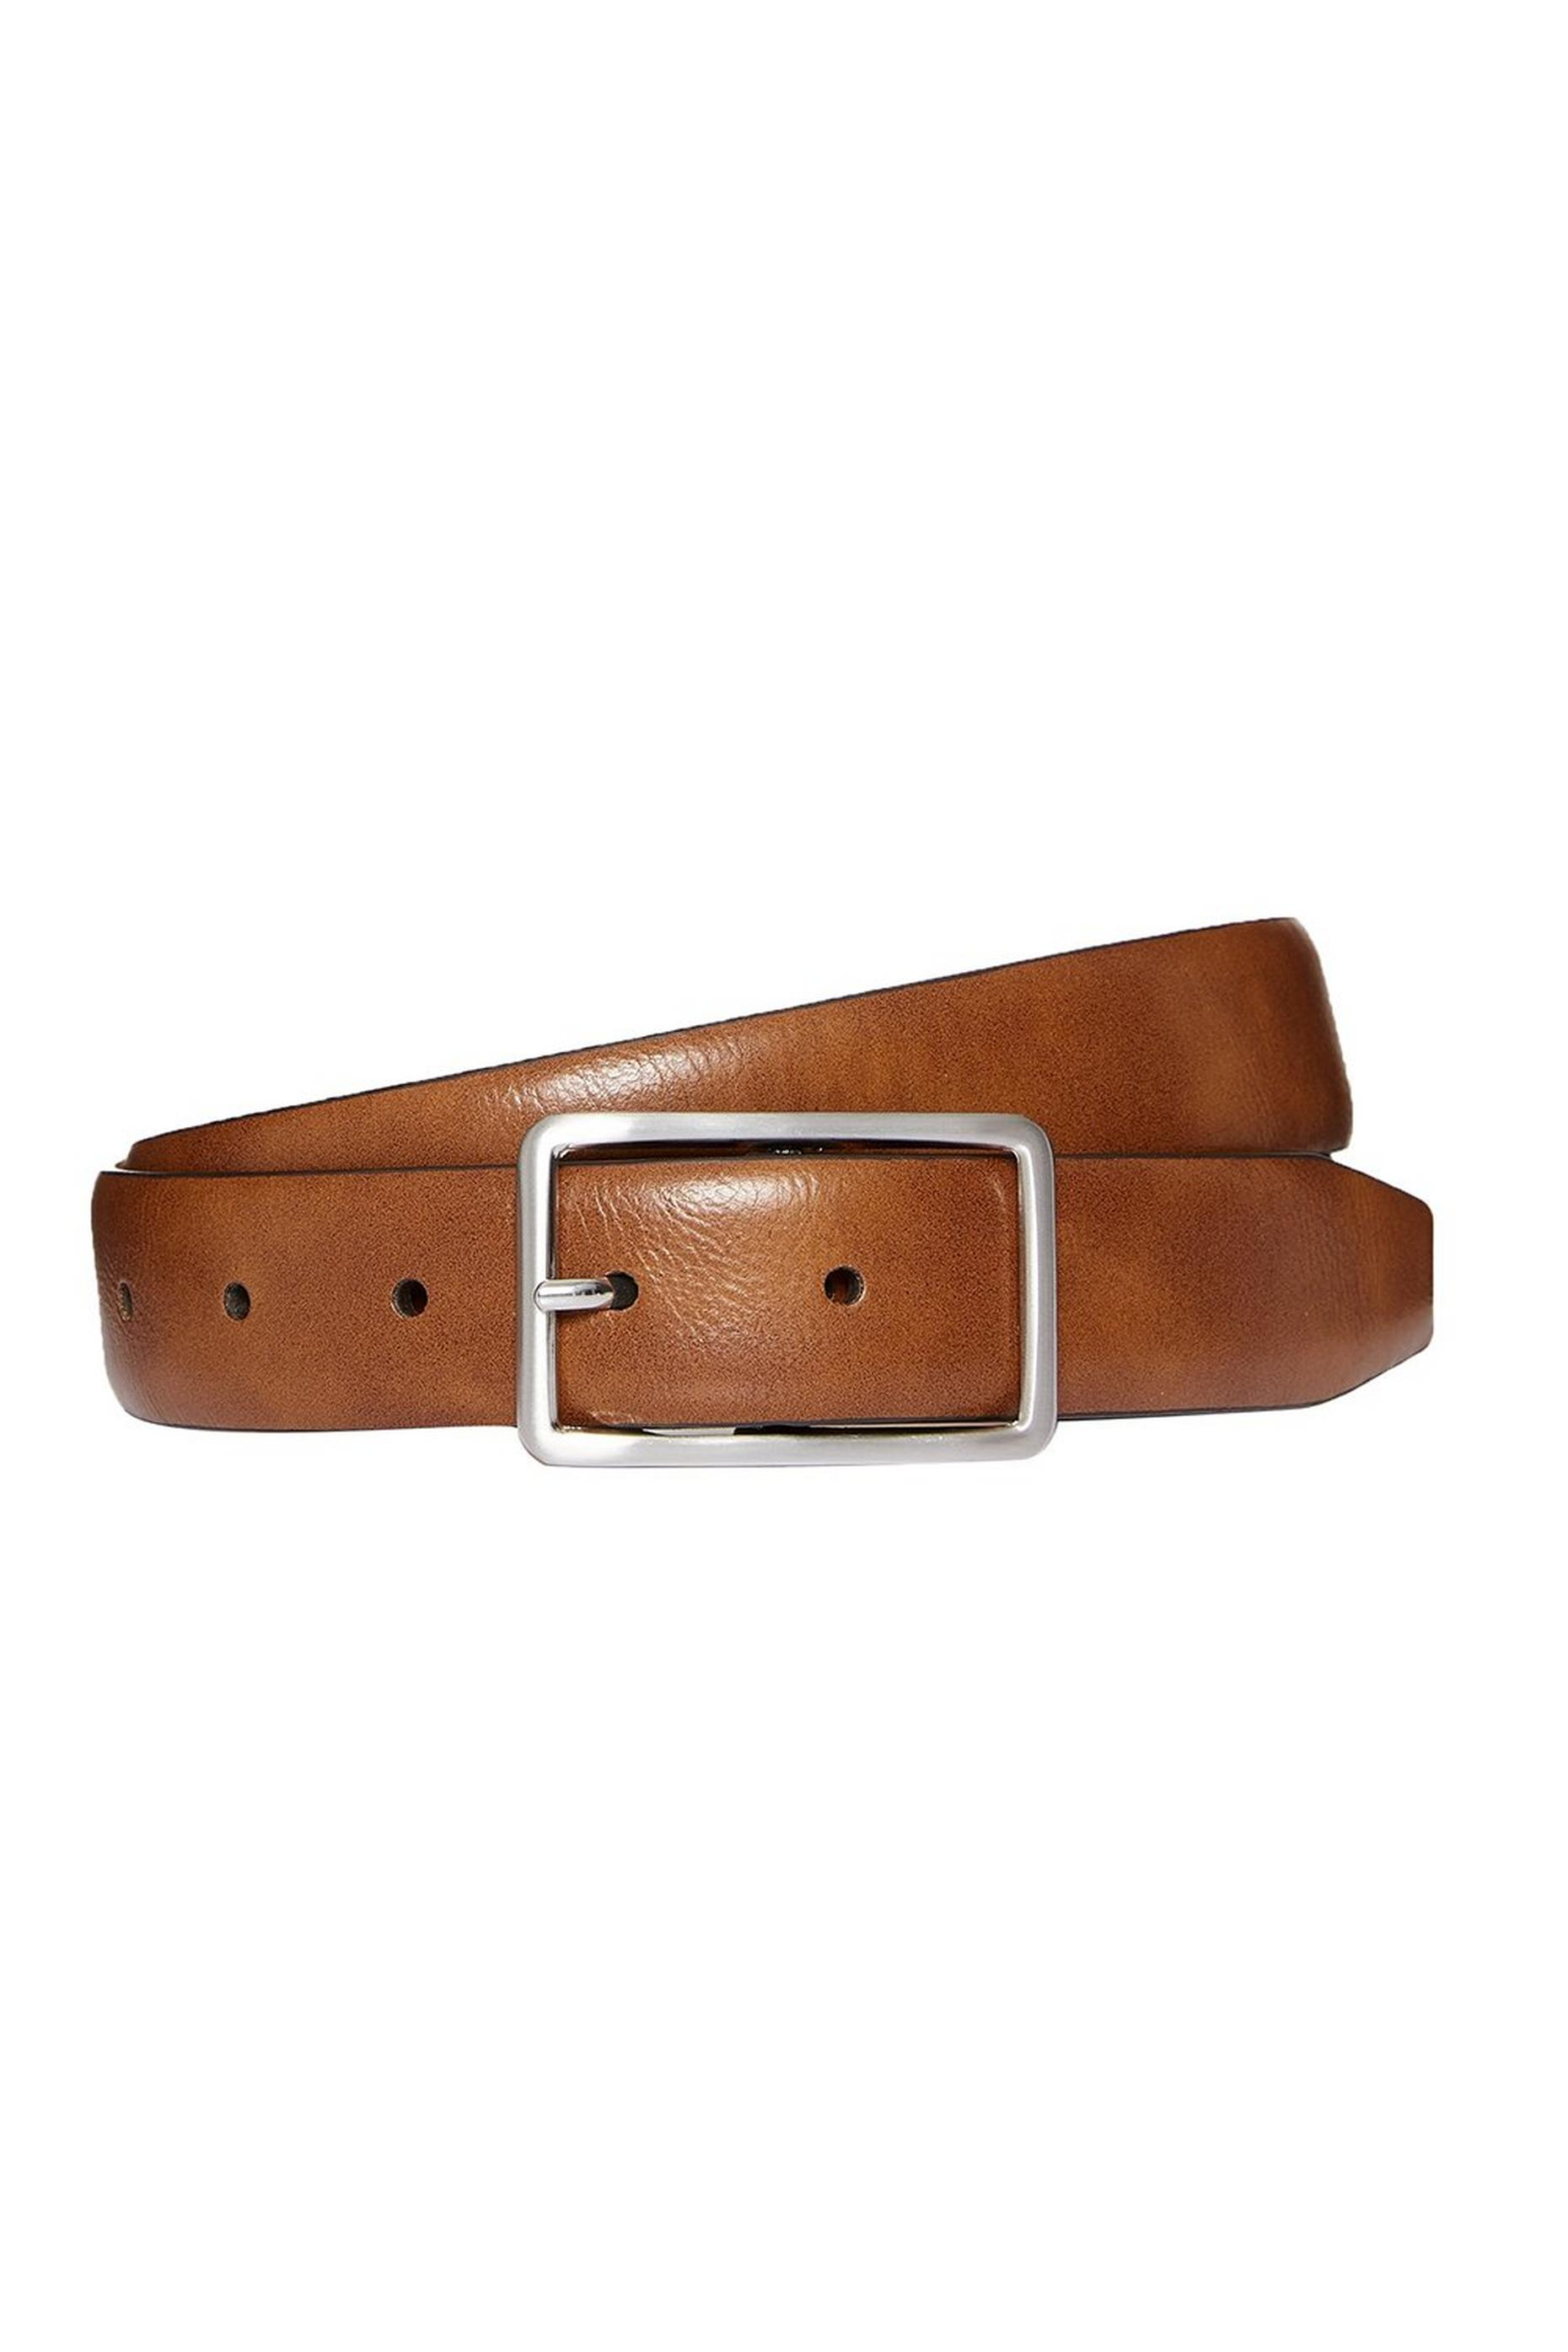 Tan rectangle buckle belt